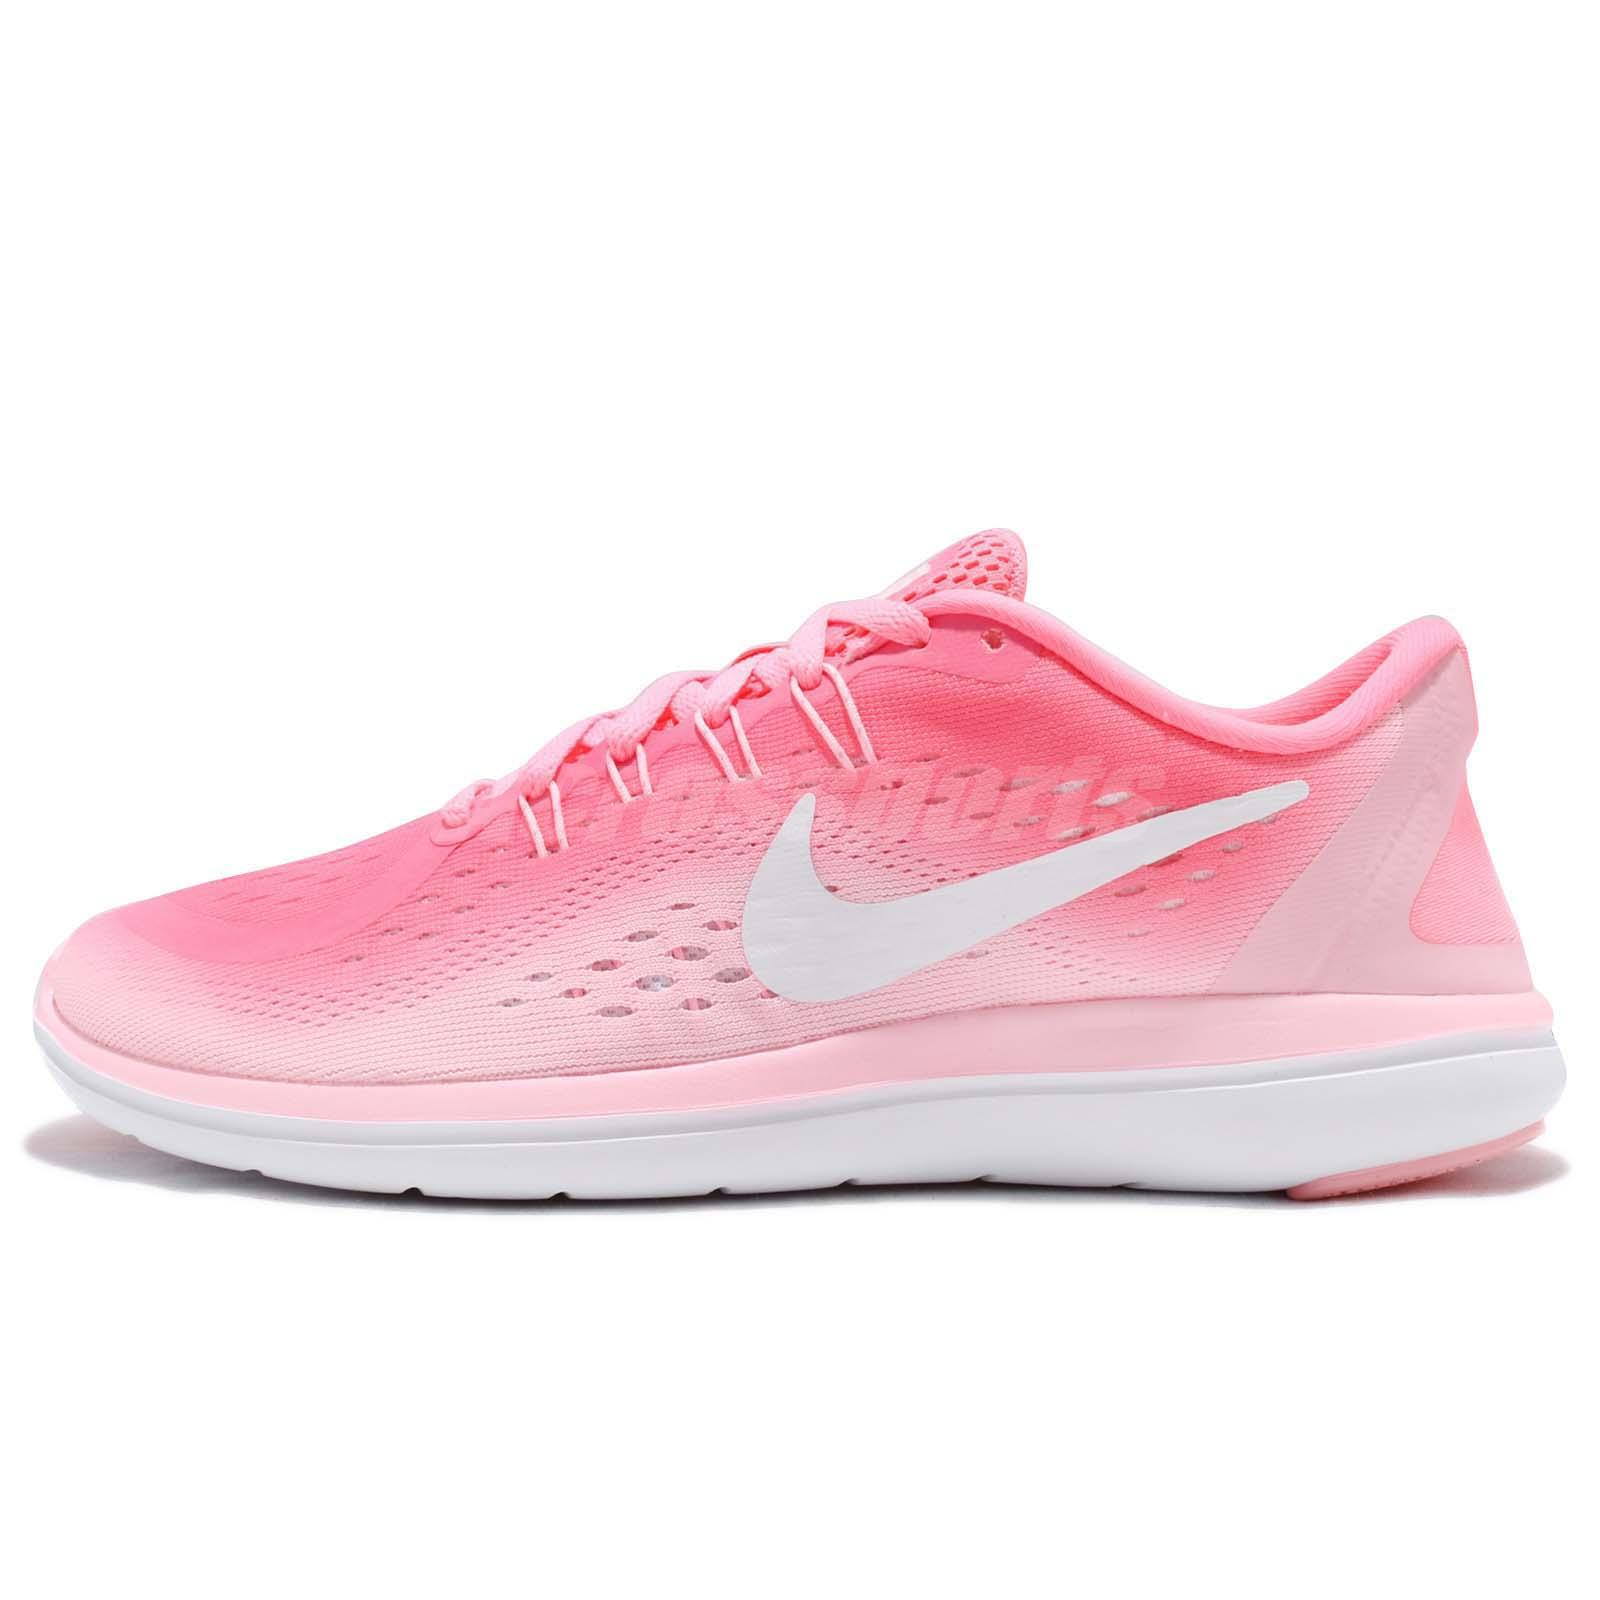 19a0a226989 Wmns Nike Flex 2017 RN Pink Sunset Pulse Women Running Shoes Sneakers  898476-601